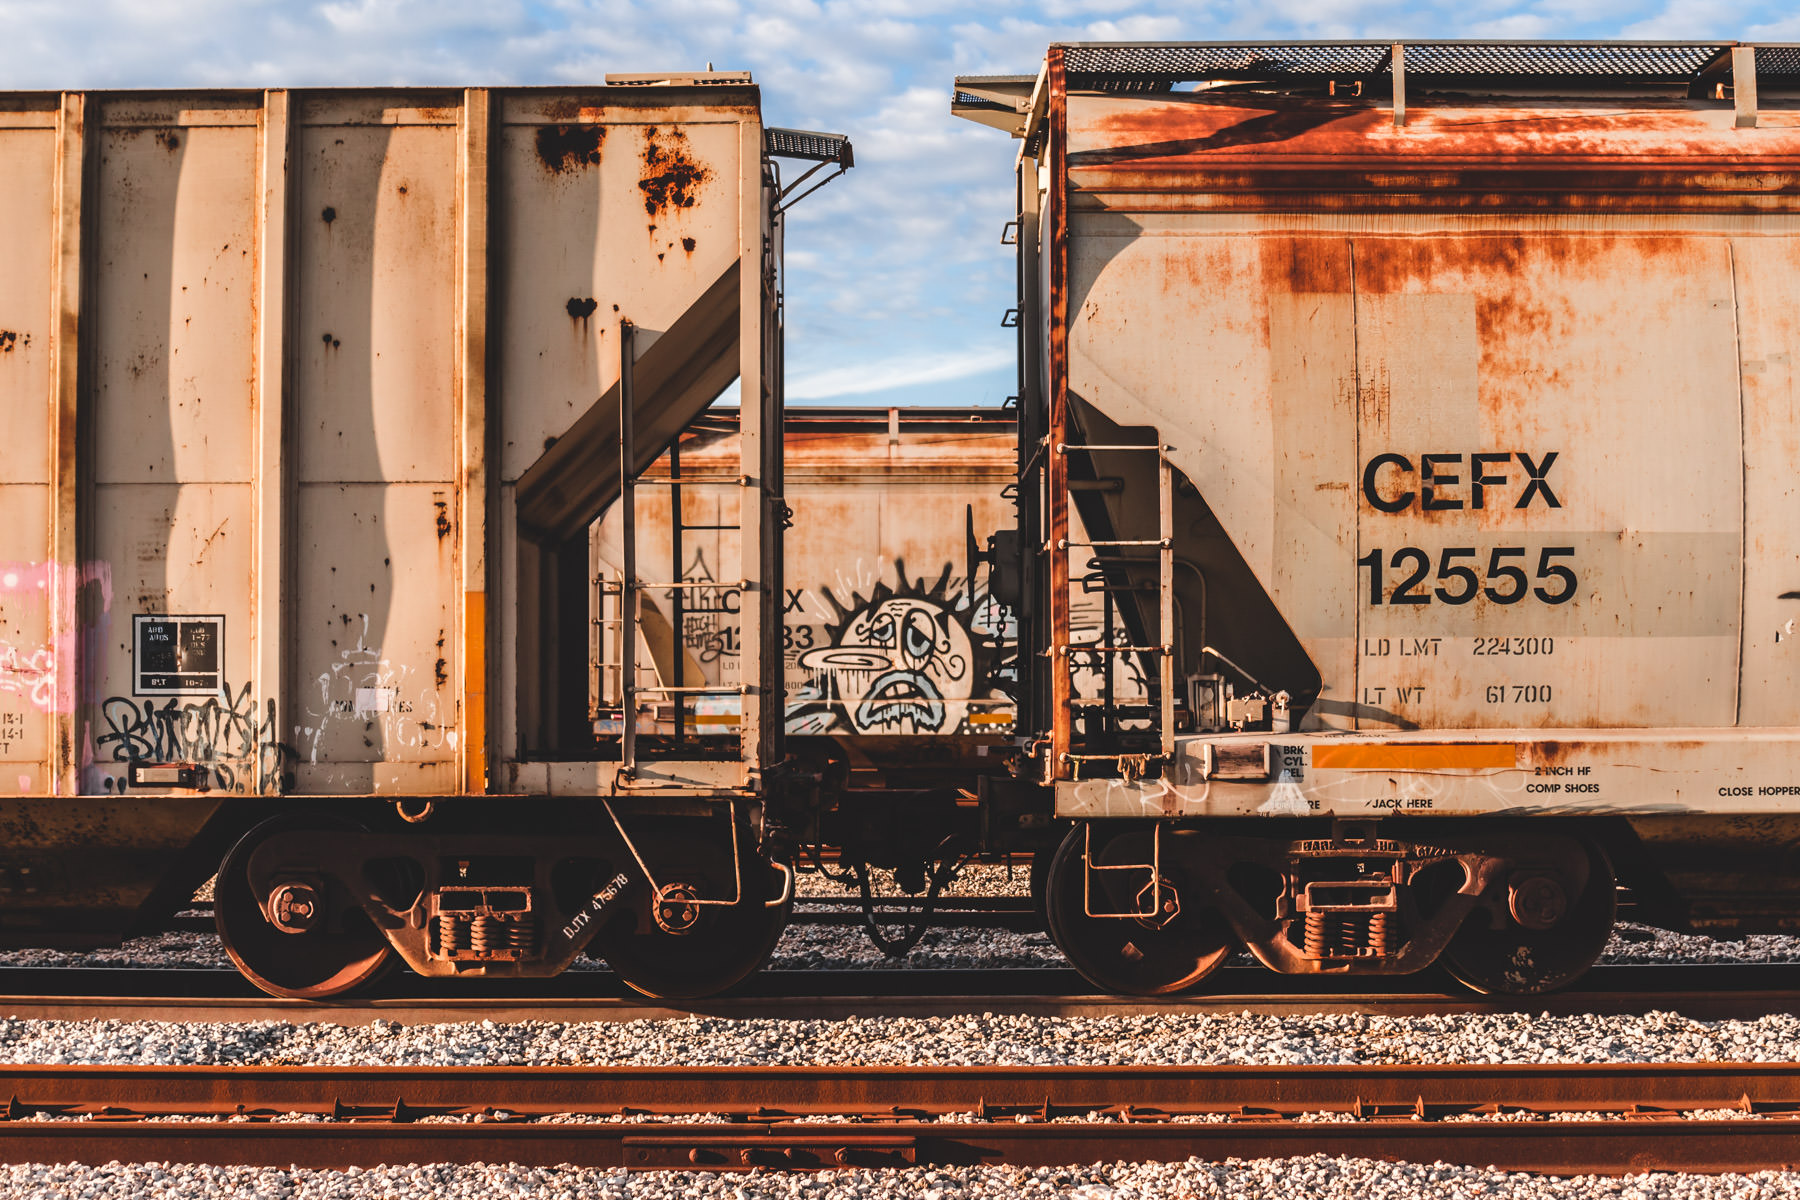 Graffiti spotted on a railcar in a Galveston, Texas, railyard.